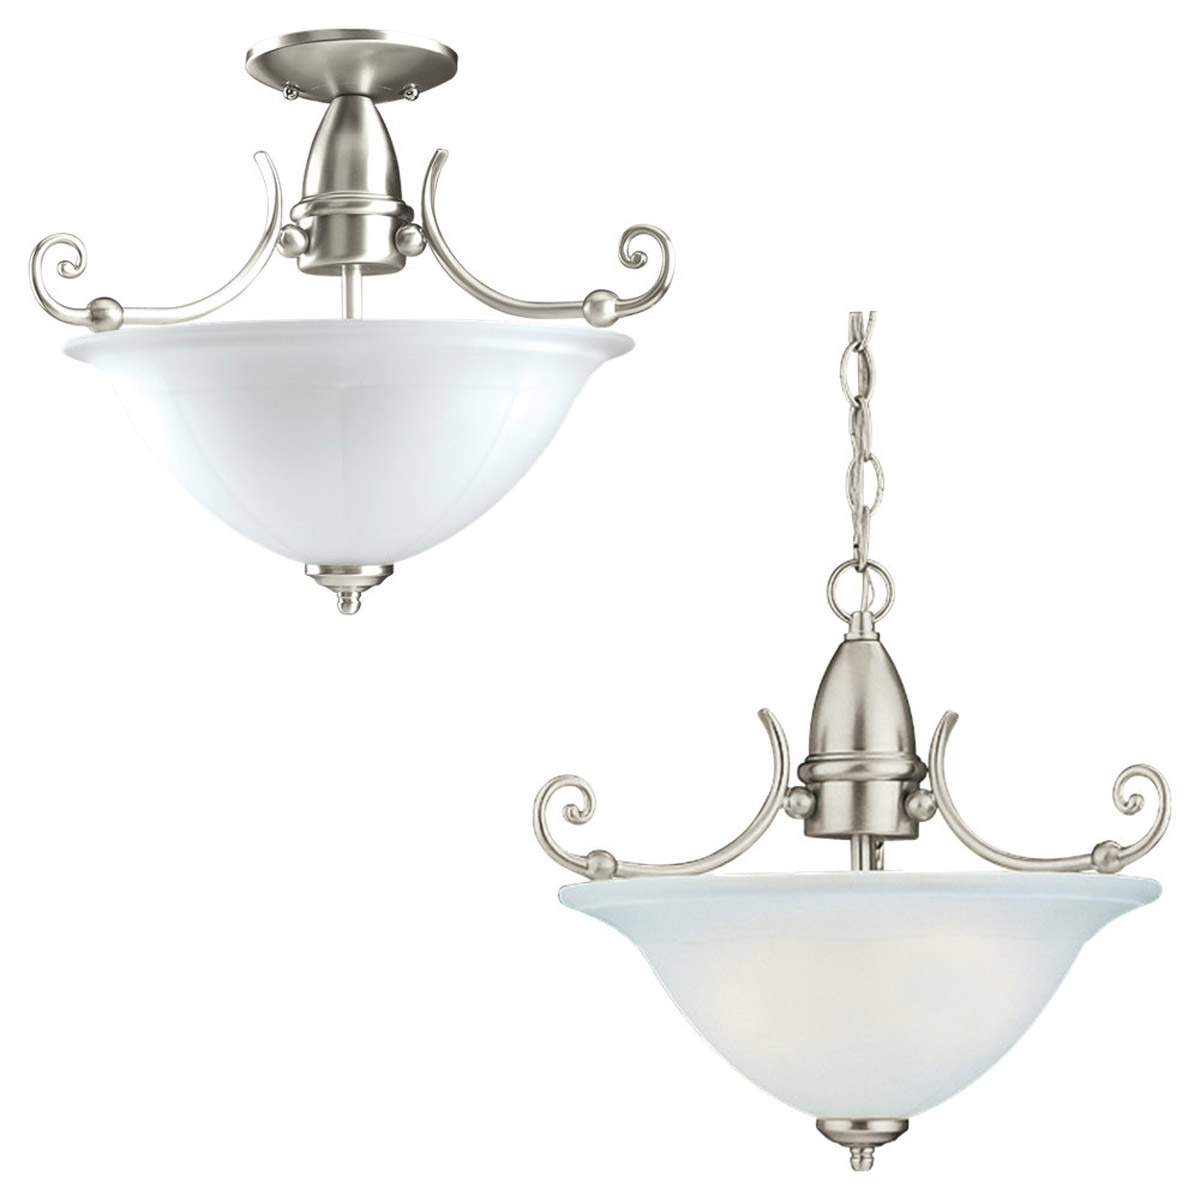 Sea Gull Lighting Canterbury 1 Light Convertible Semi-Flush in Brushed Nickel 59050BLE-962 photo